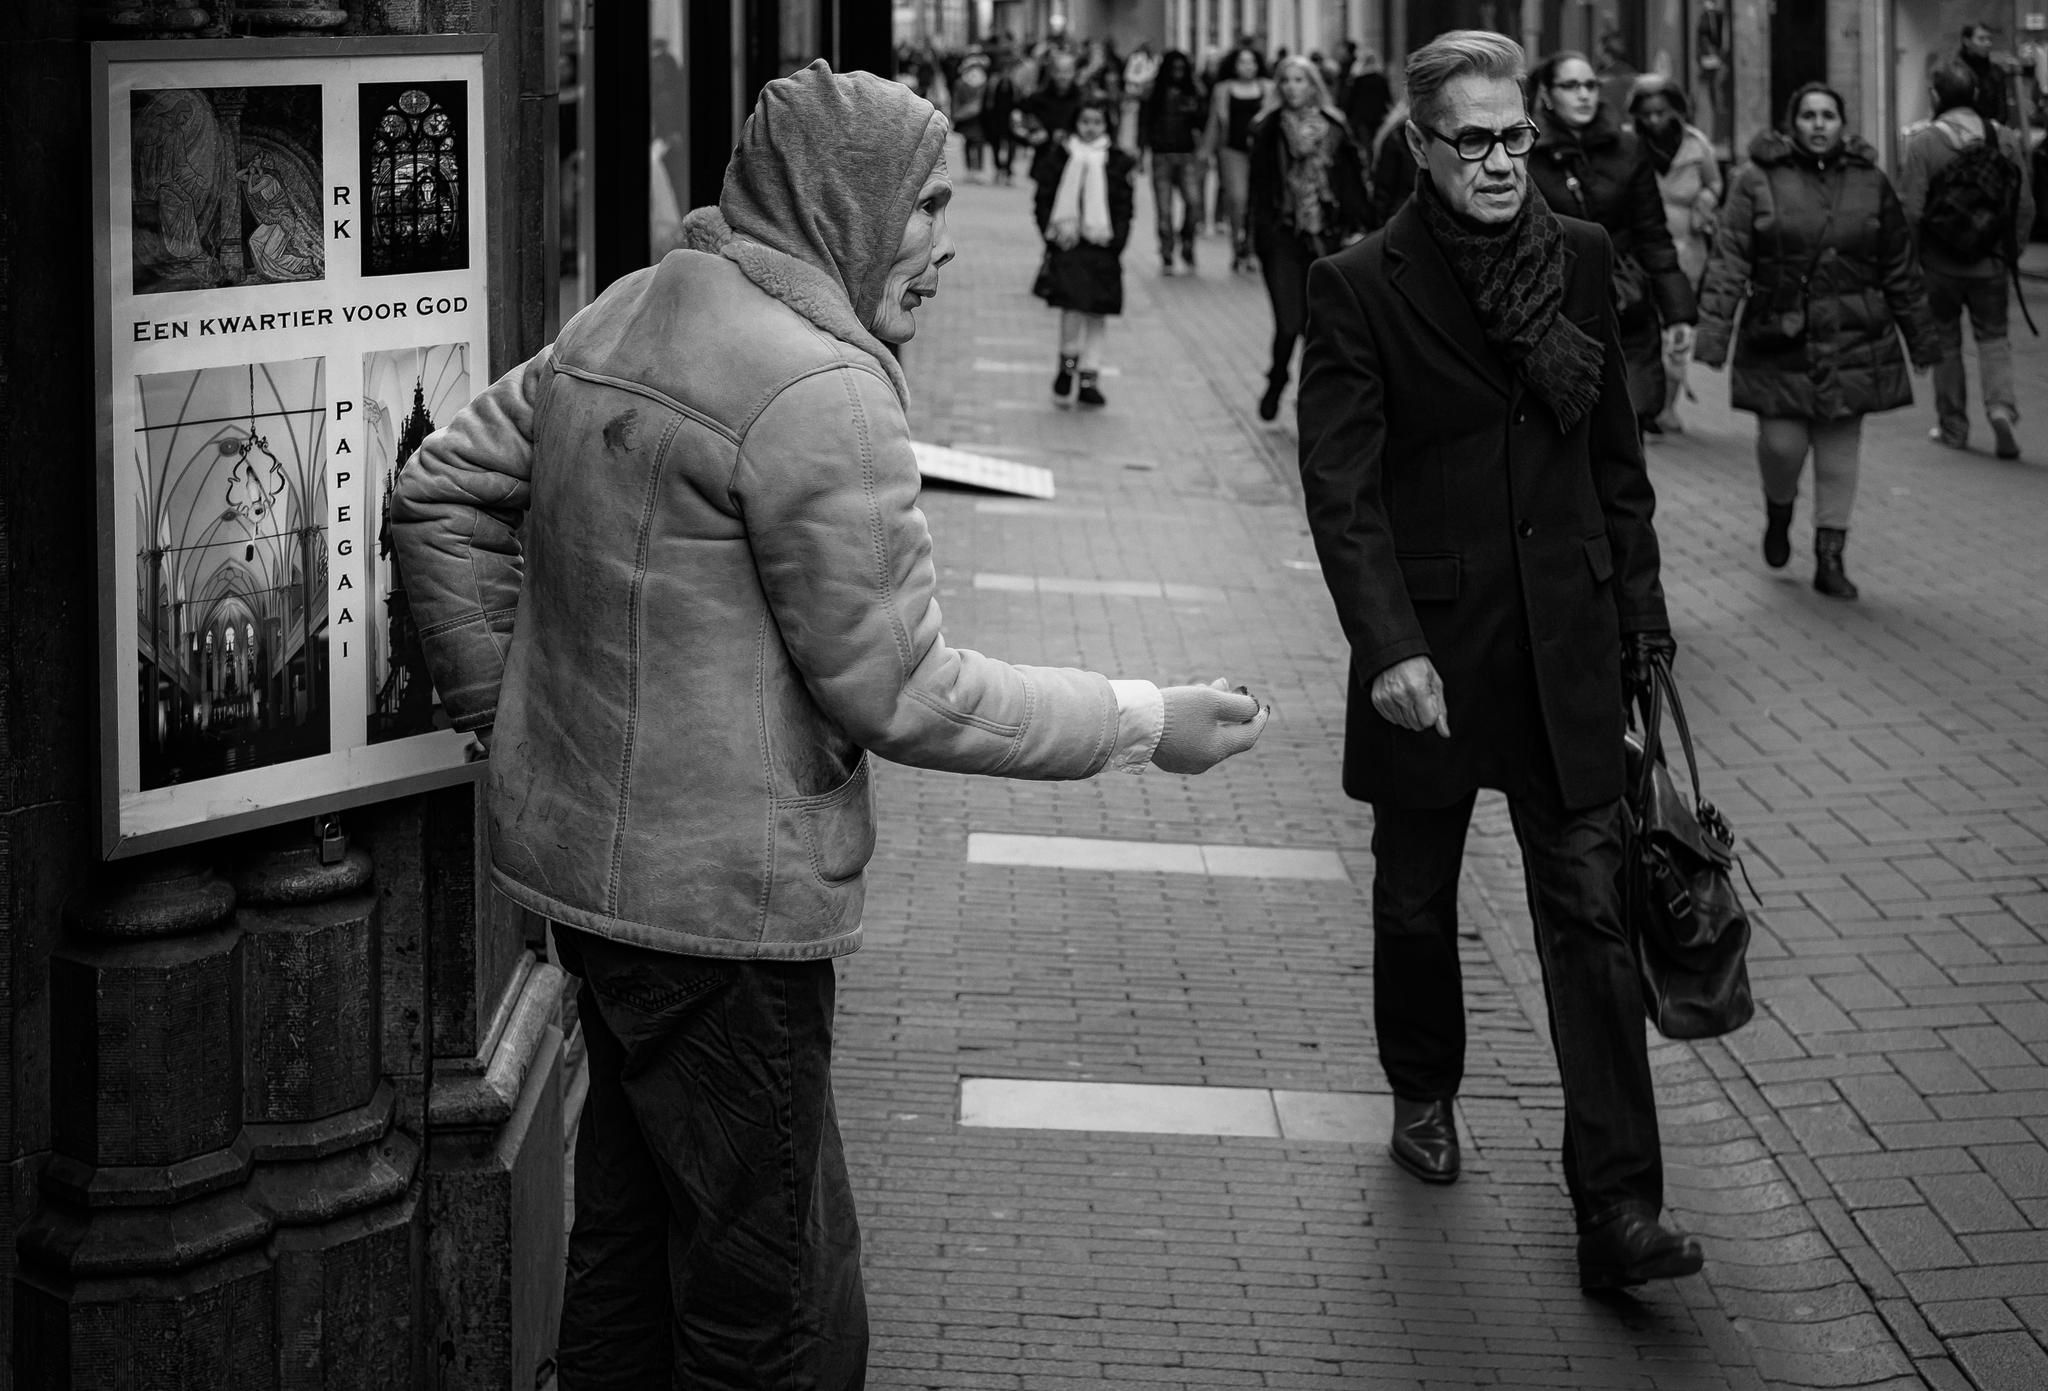 A quarter for God, a dime for me... - Beggar asking for money while standing in…